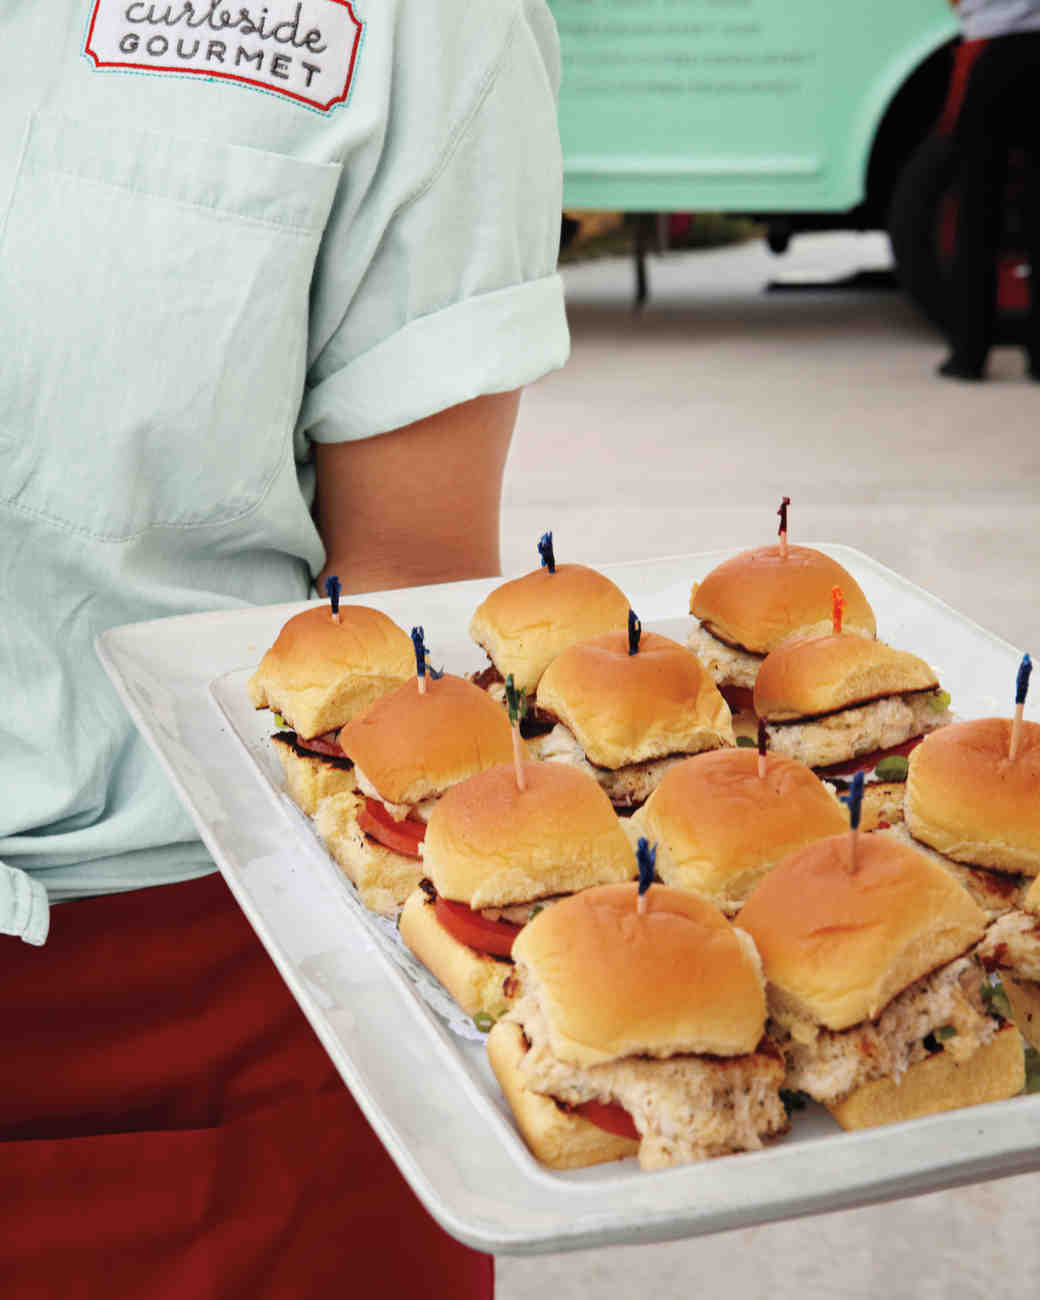 foodcart-sliders-reception1777-mwd109592.jpg